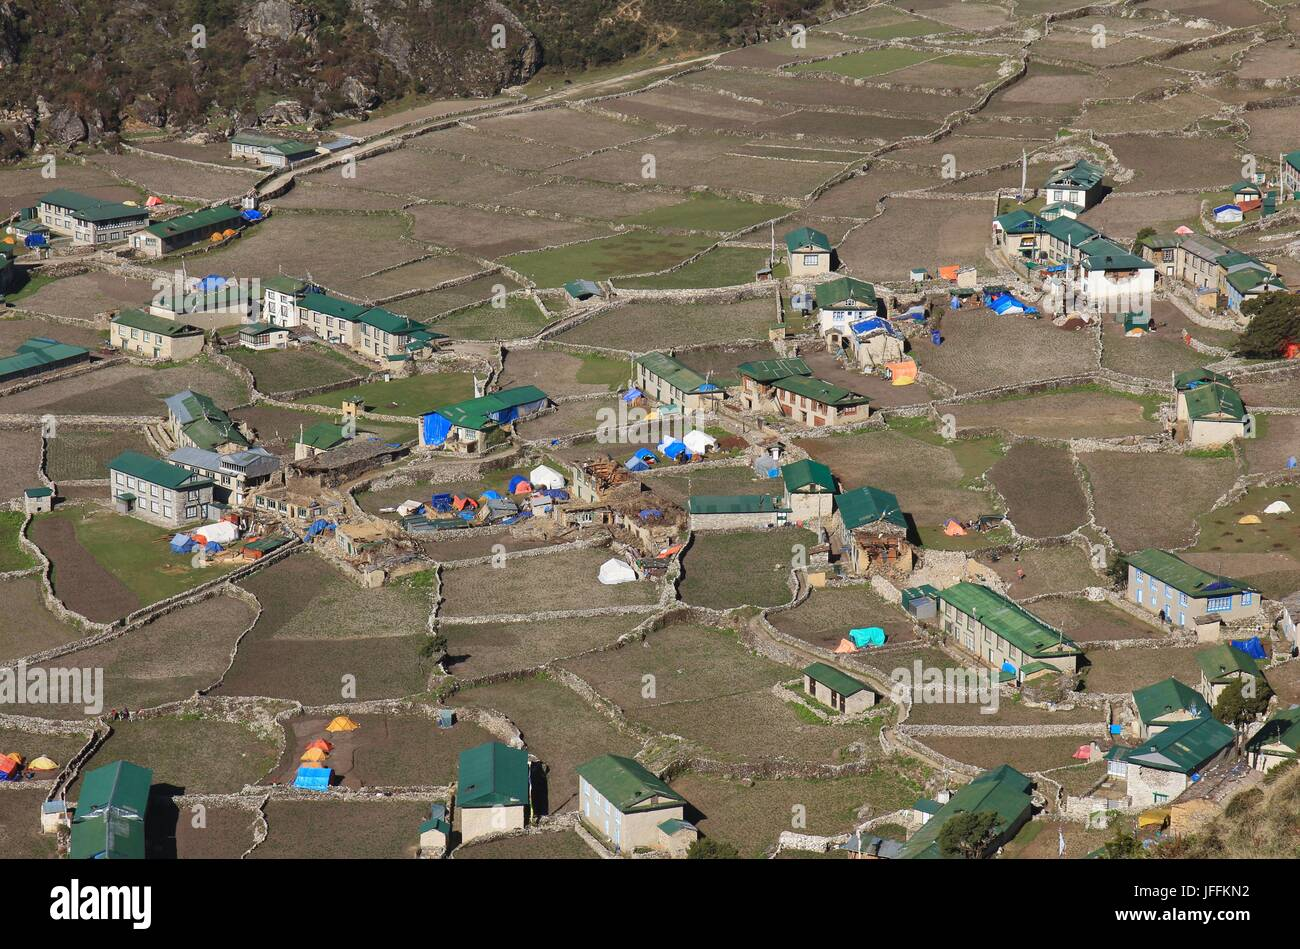 Village Khumjung after the earthquake - Stock Image